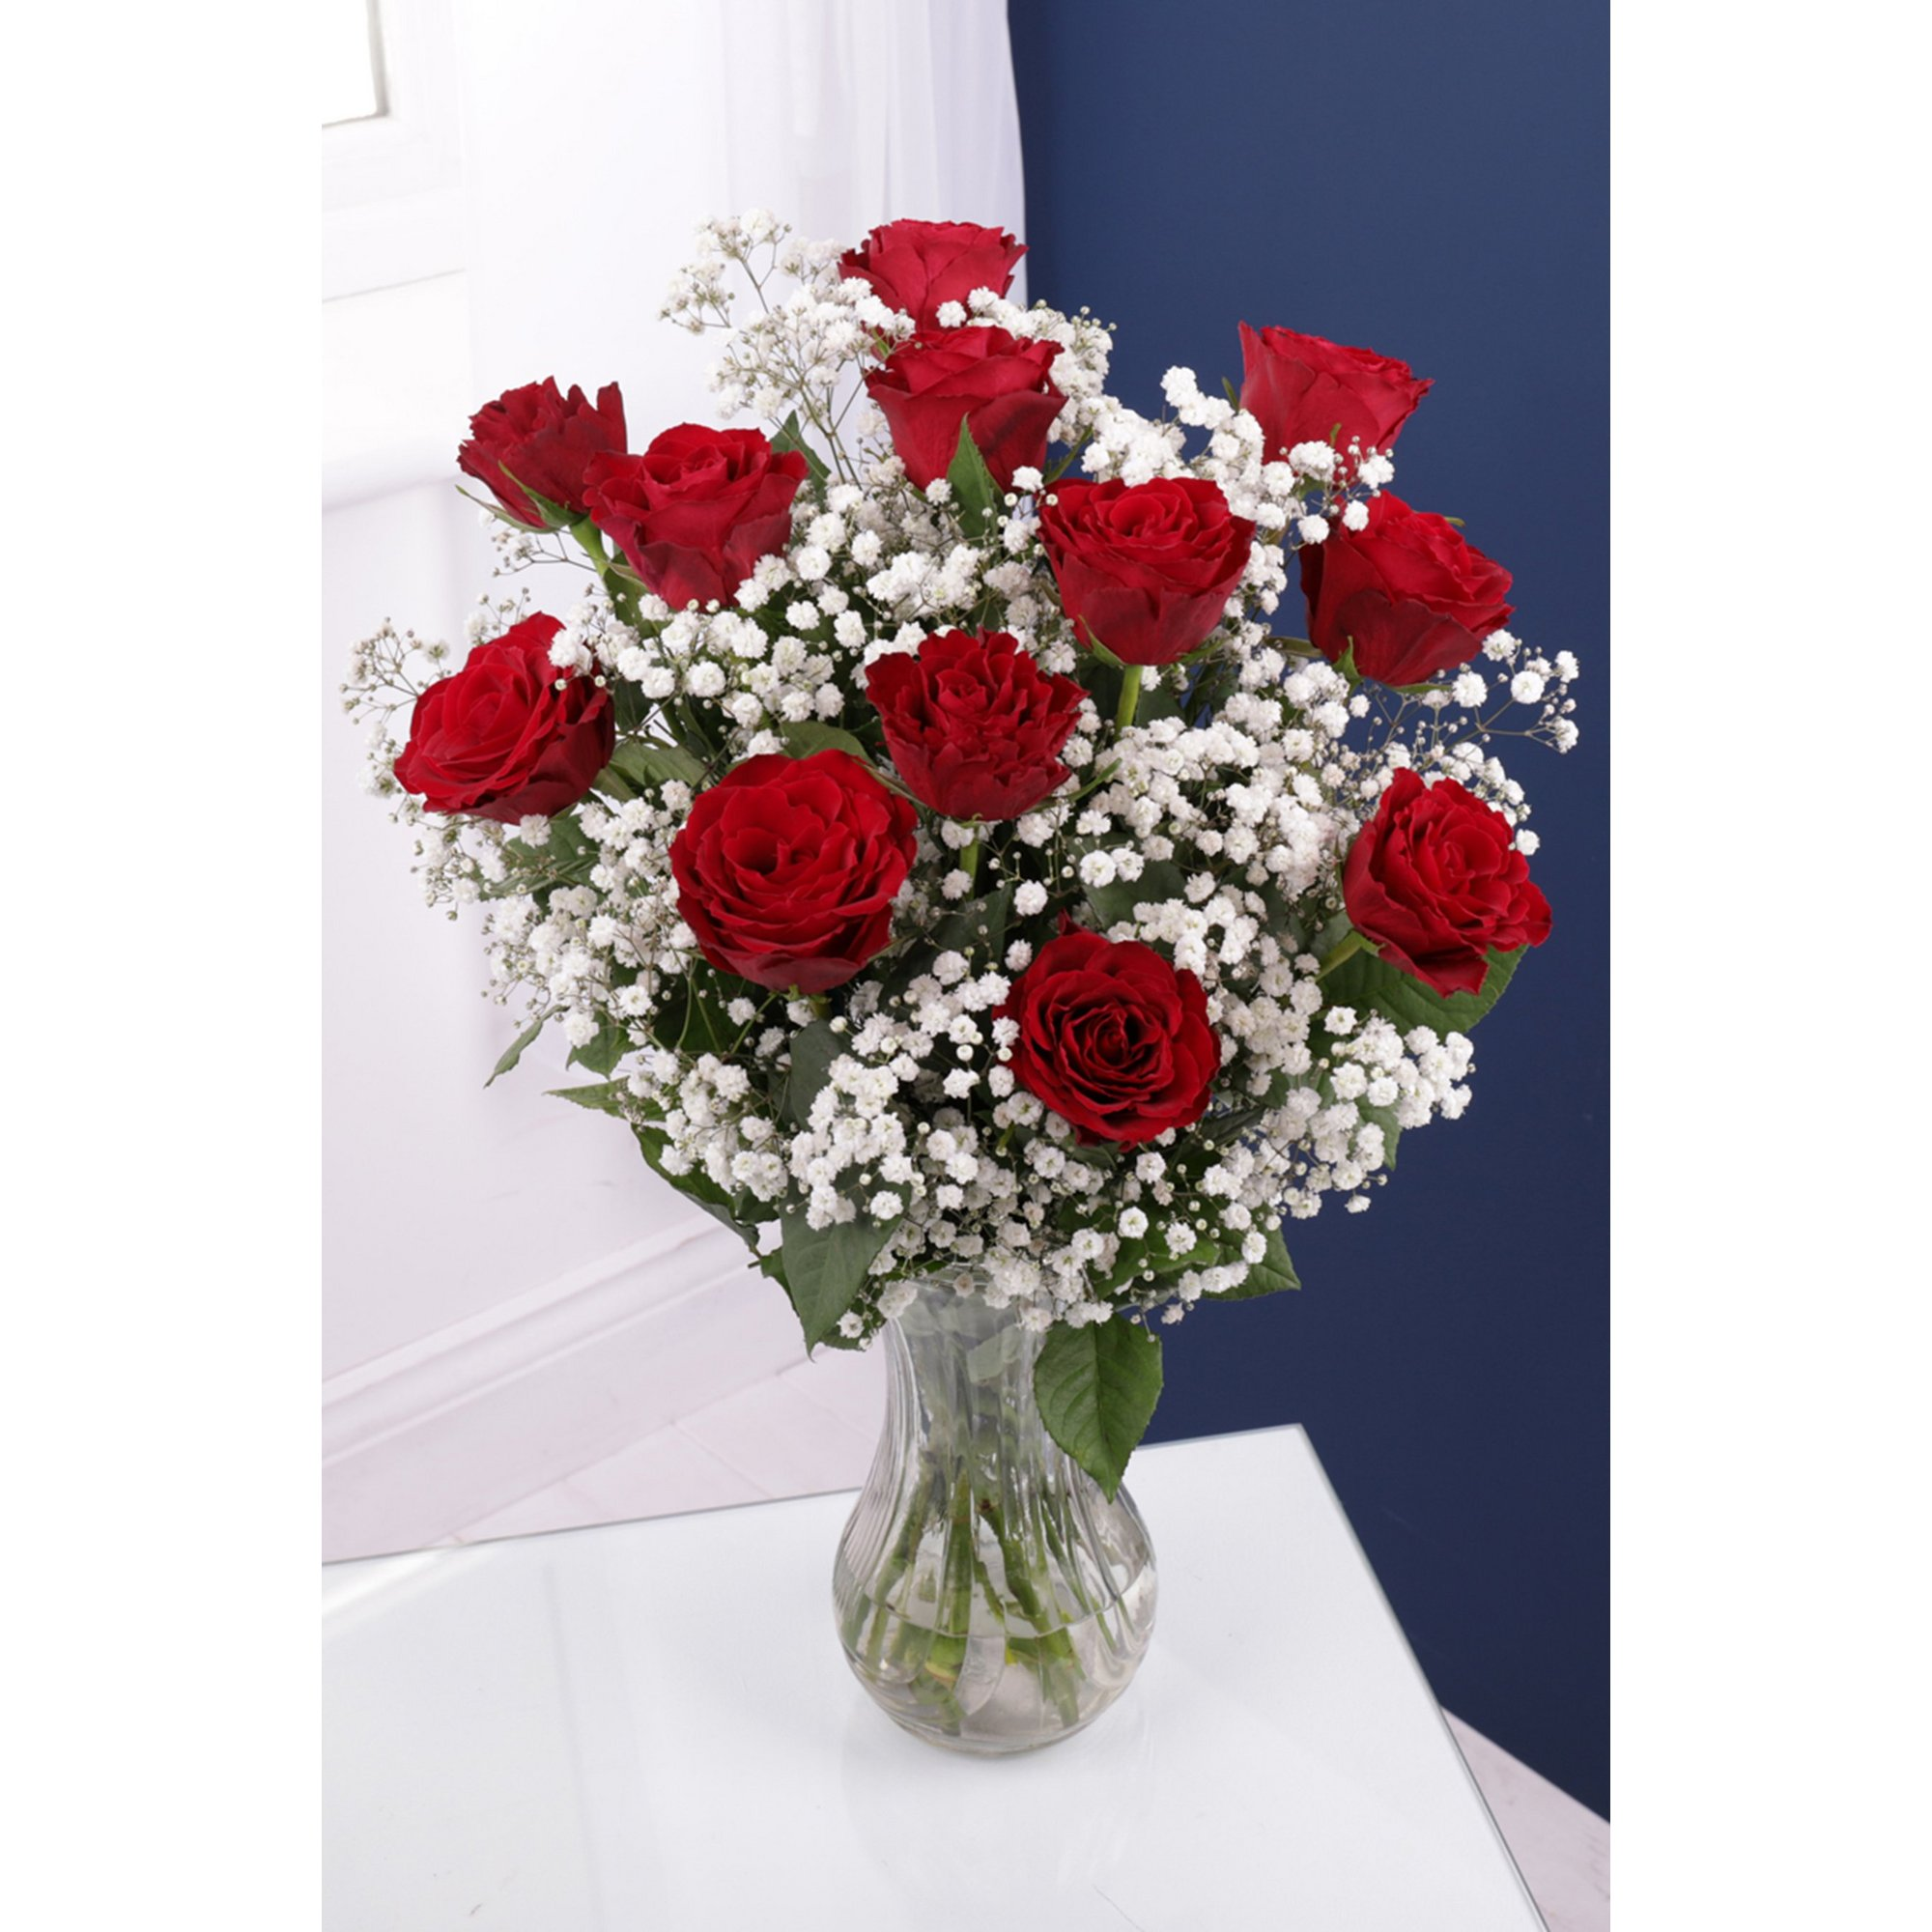 Image of 12 Red Roses and Gypsophila Bouquet